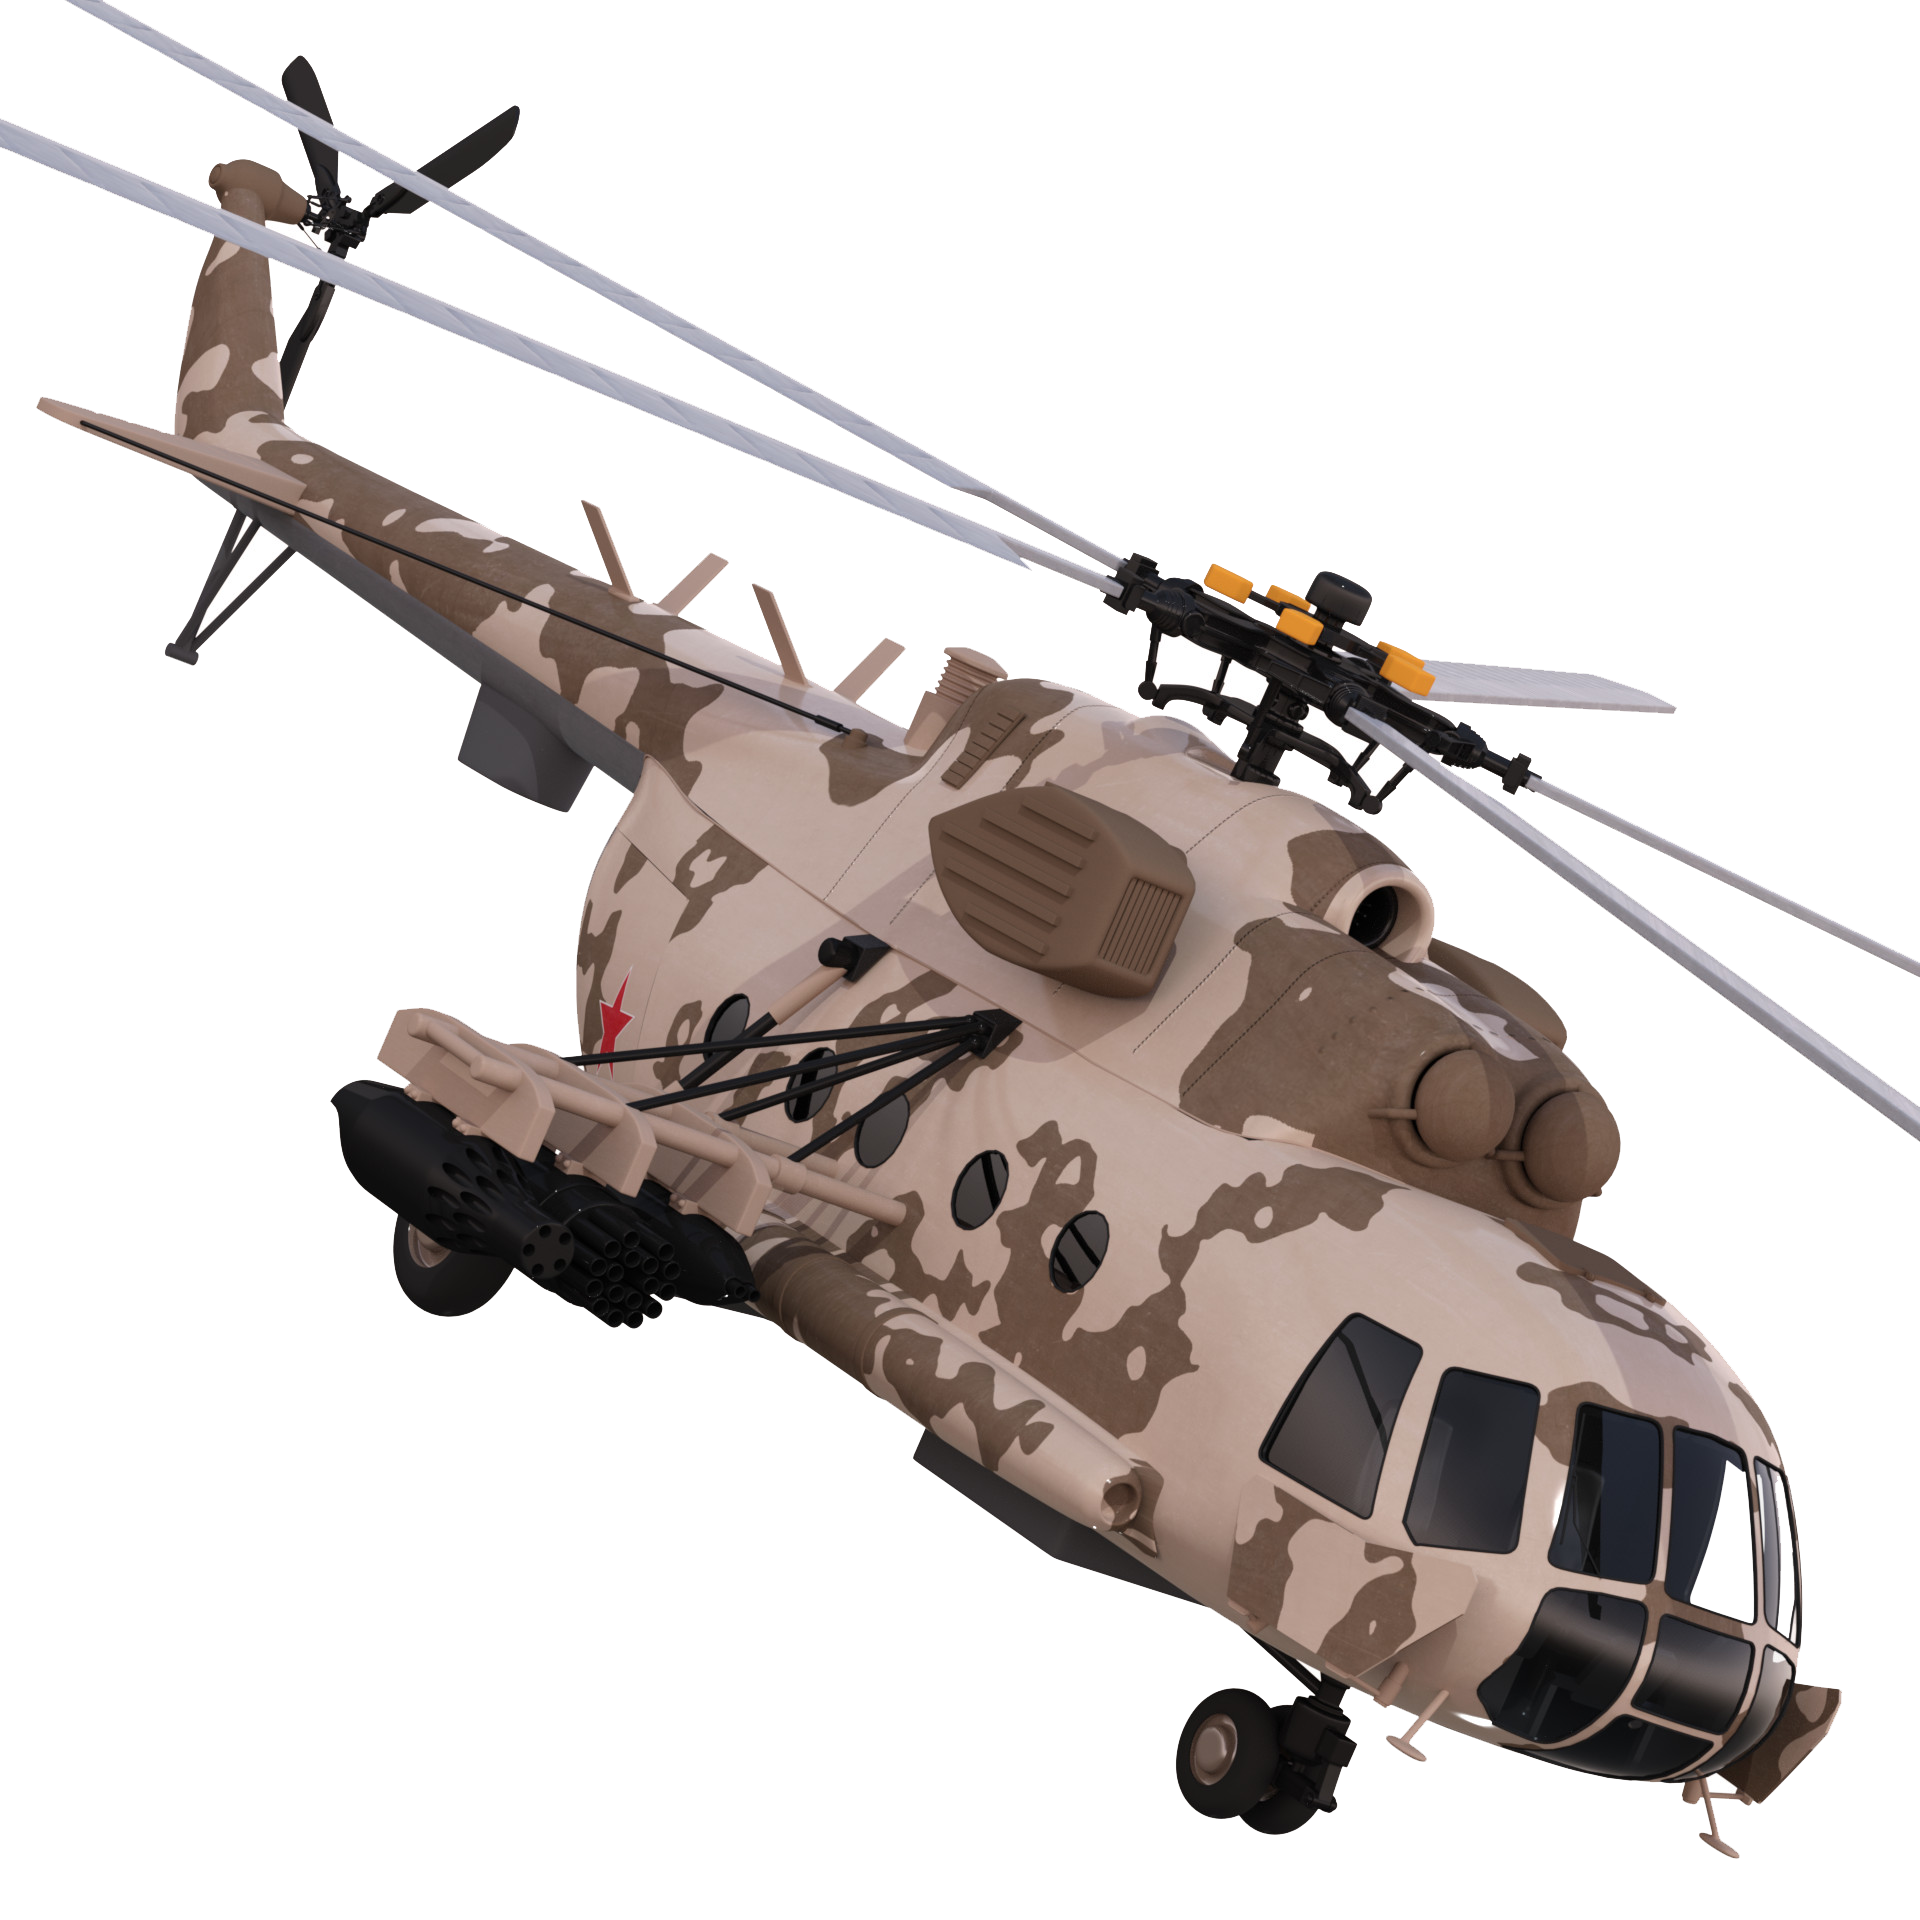 Army helicopter png. Transparent images pluspng